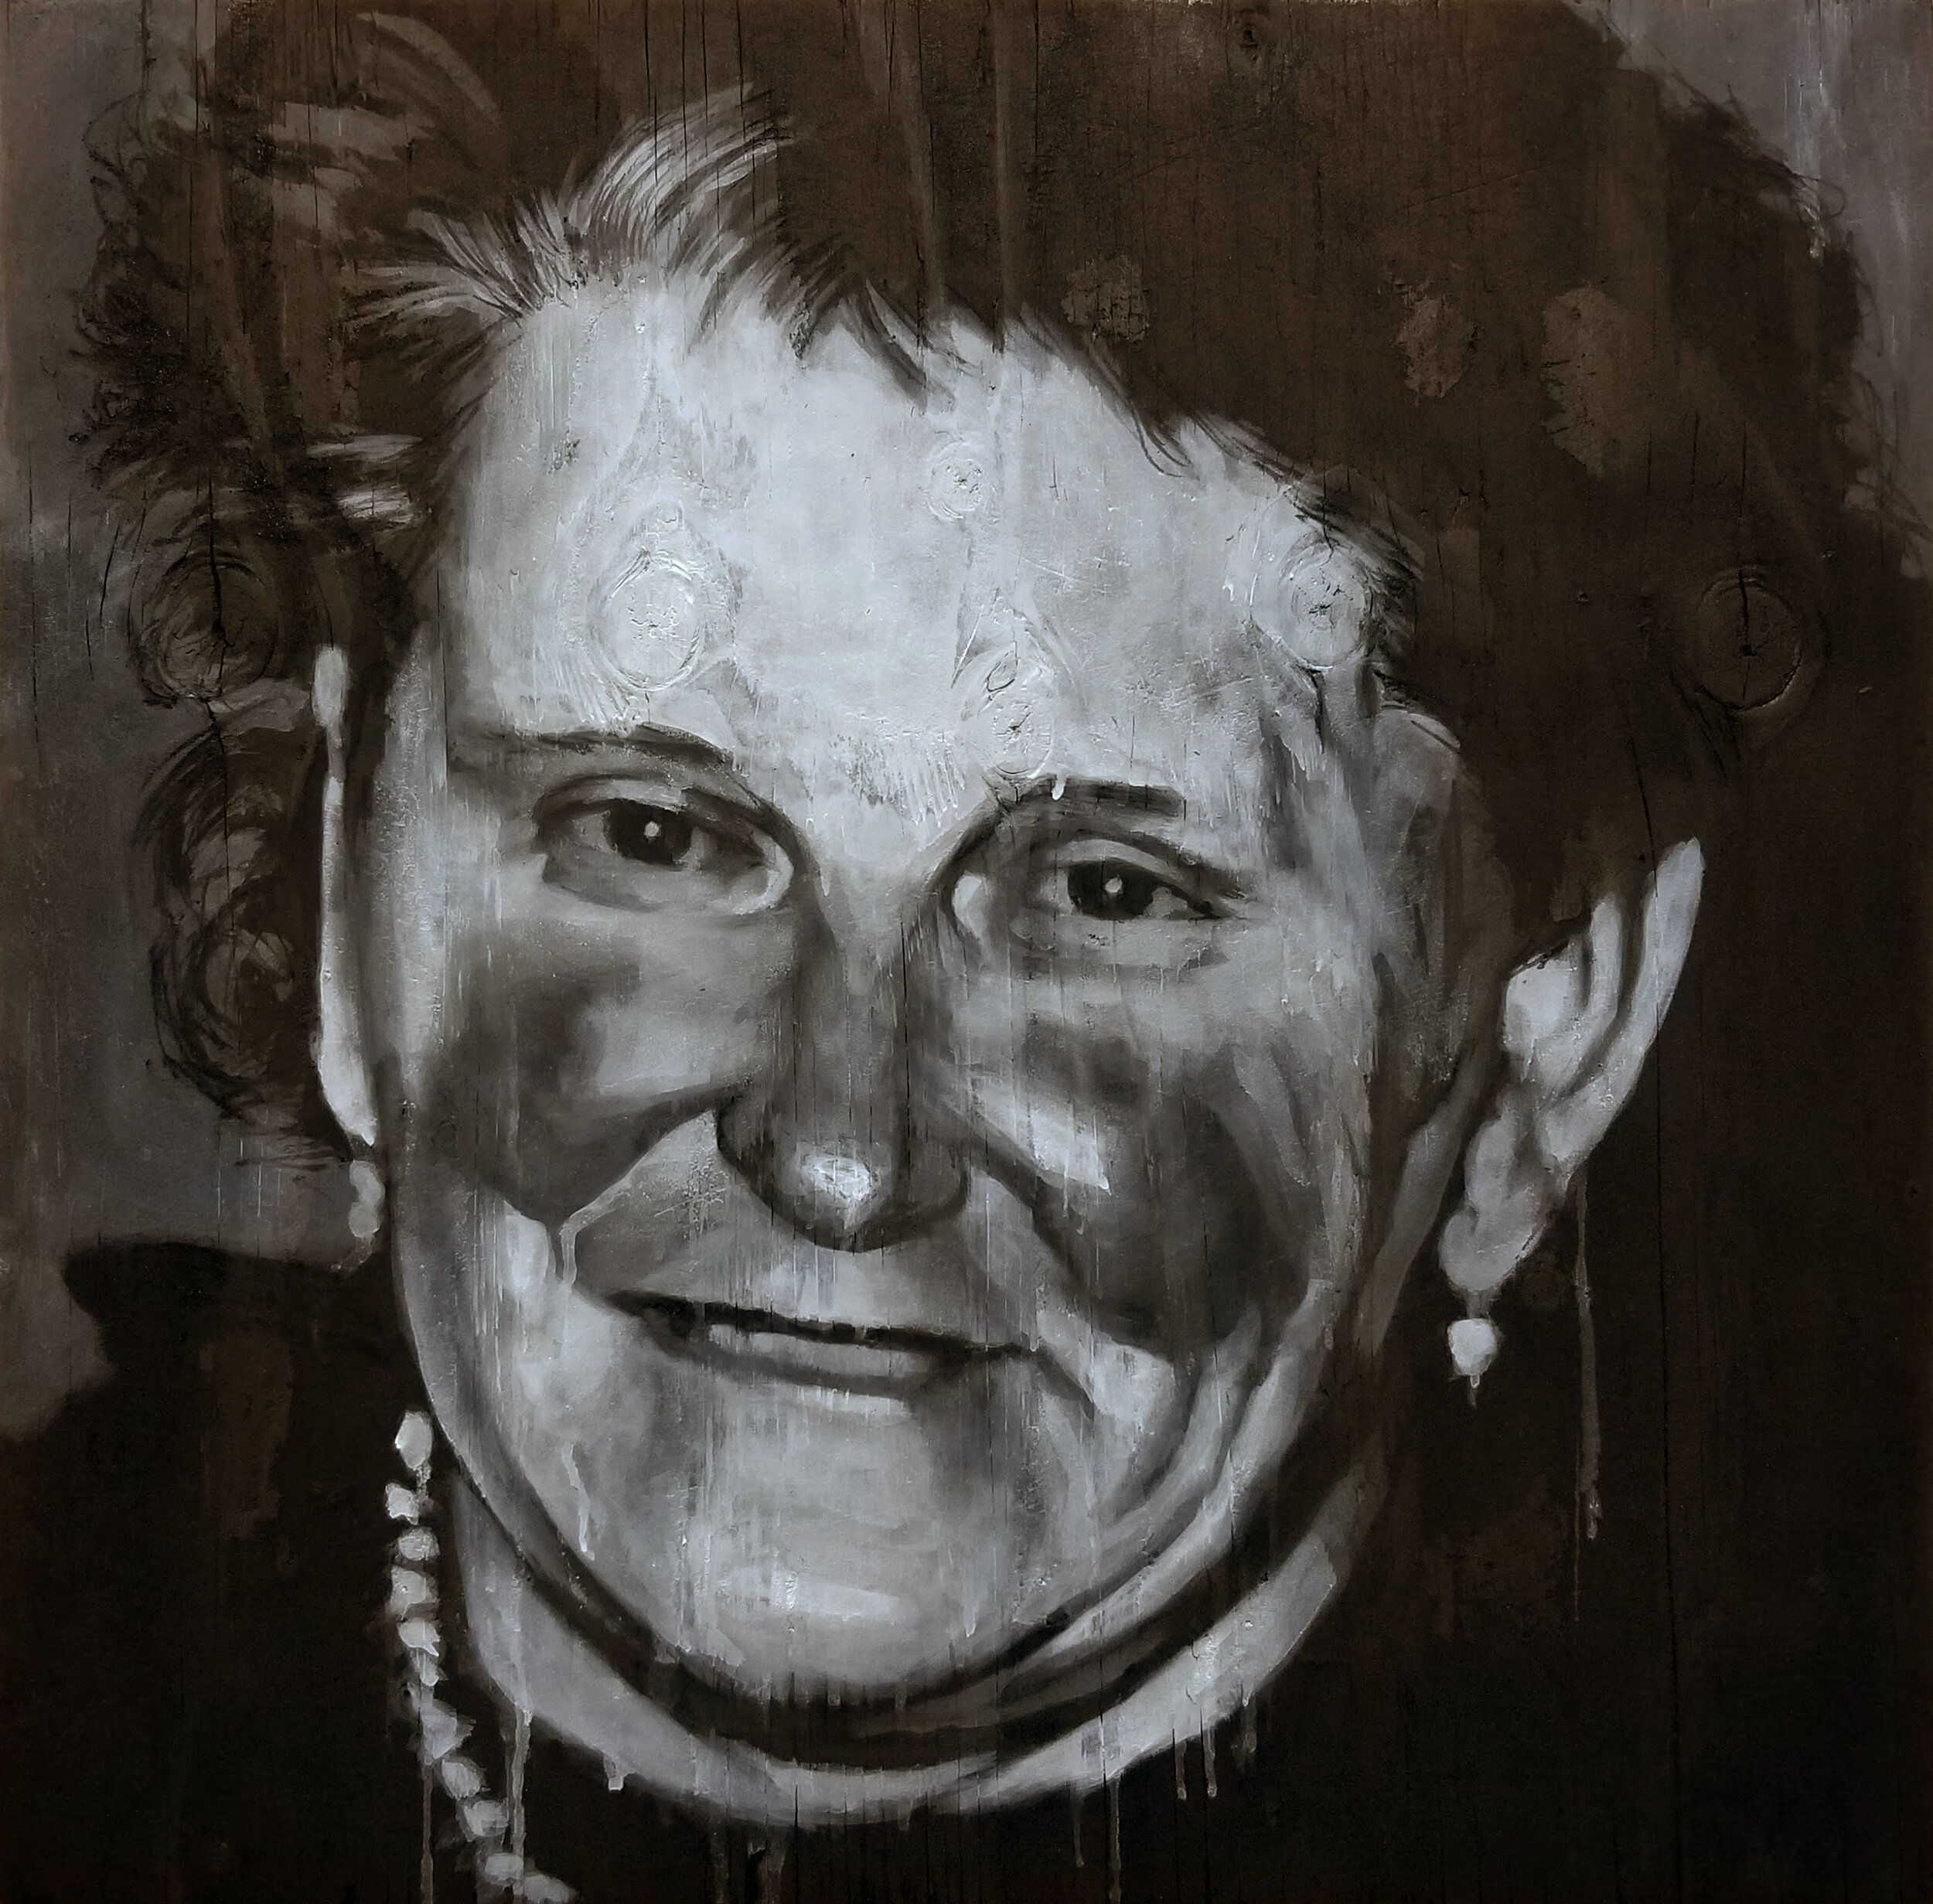 The Smile, 21.5x21.5, ash,charcoal and oil on burned panel